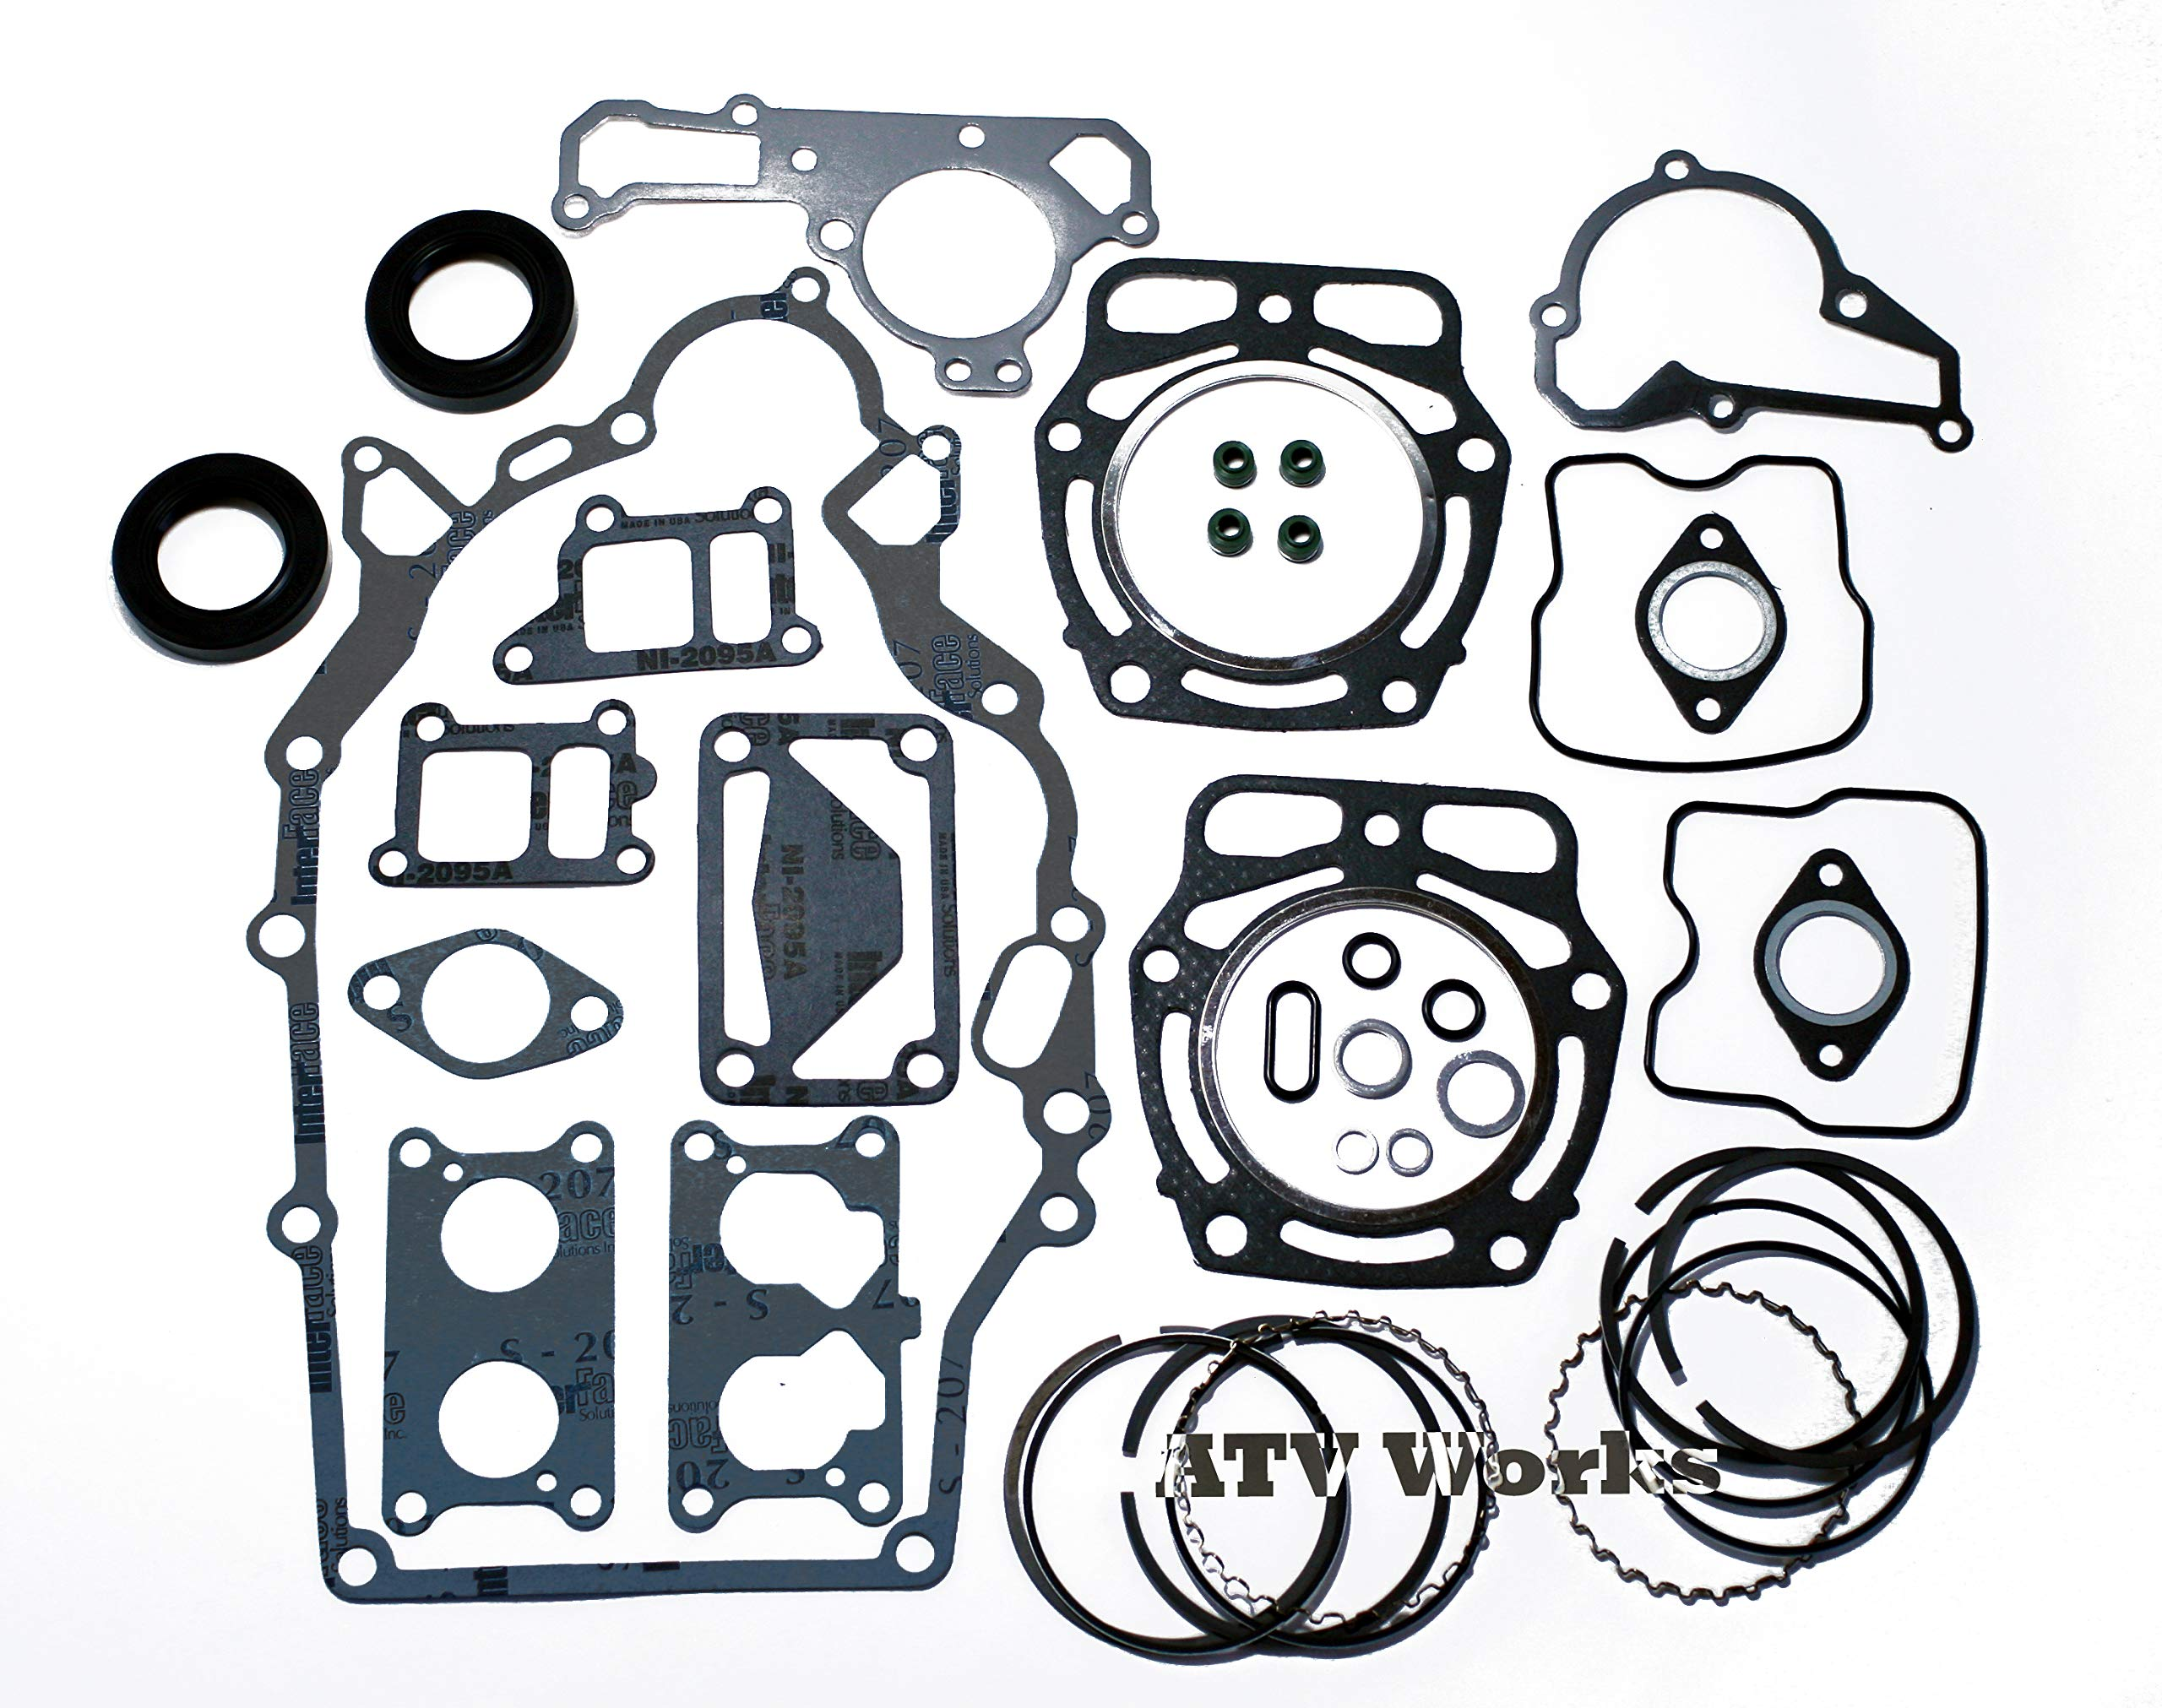 Kawasaki Mule KAF620 Engine Rebuild Kit w/Rings by ATVWorks